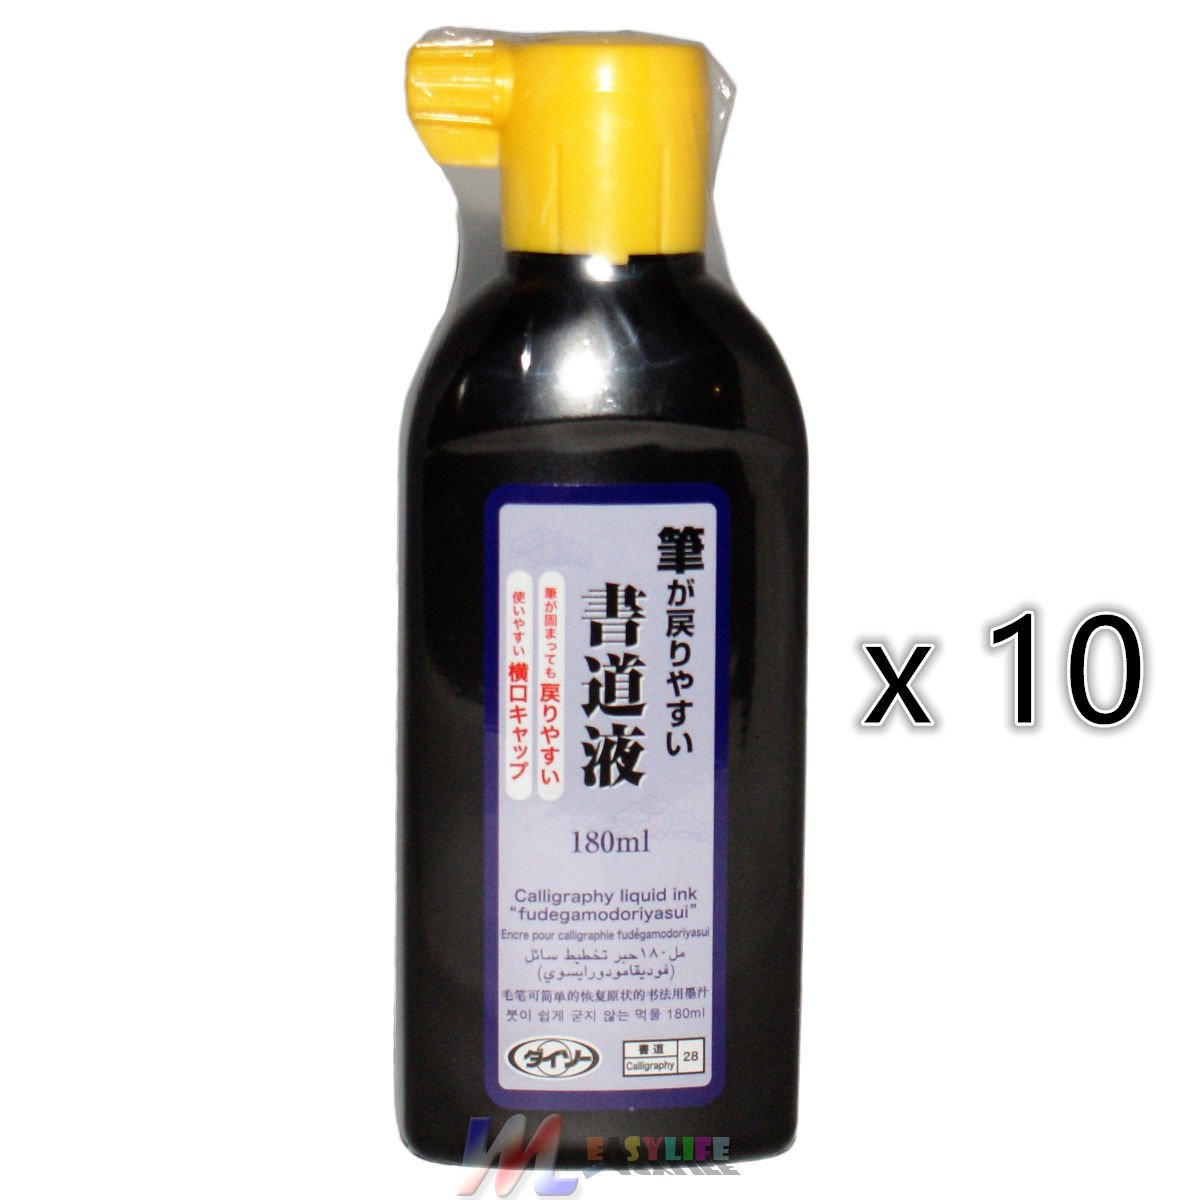 Lot of 10 Sumi Calligraphy Liquid Ink in a 180ml Bottle Made in Japan